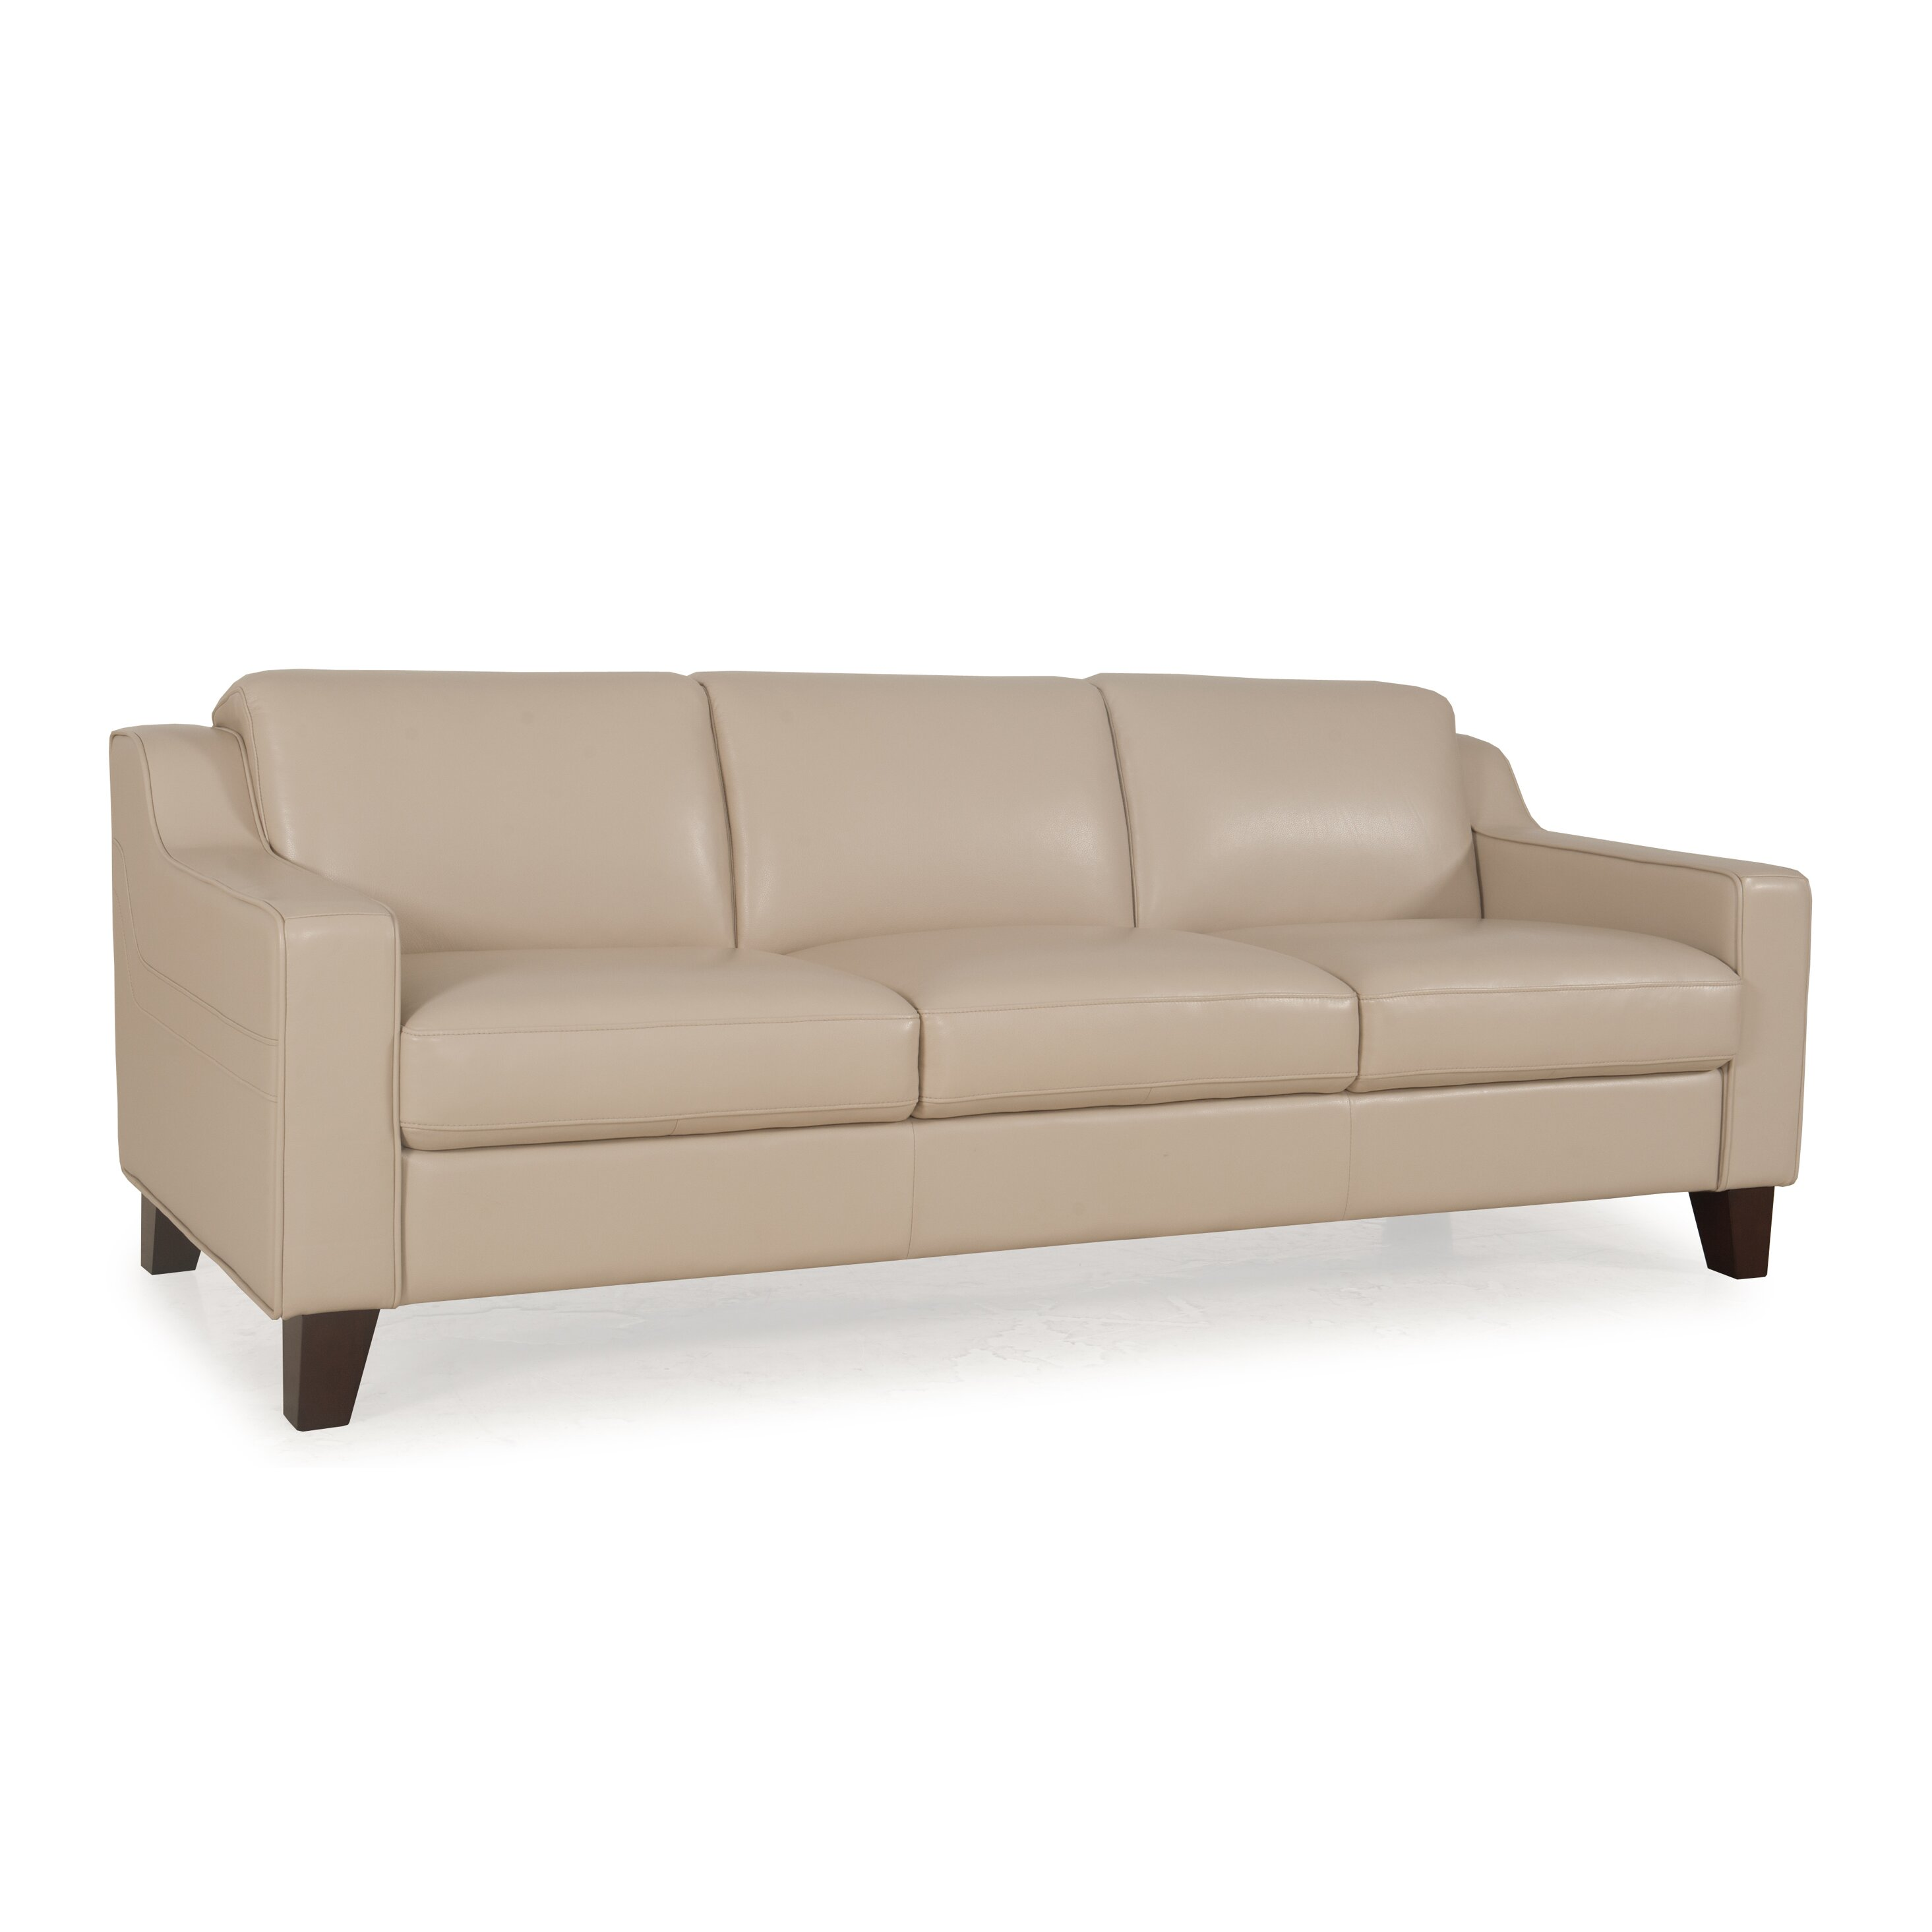 Moroni Cora Full Top Grain Leather Sofa Wayfair Ca